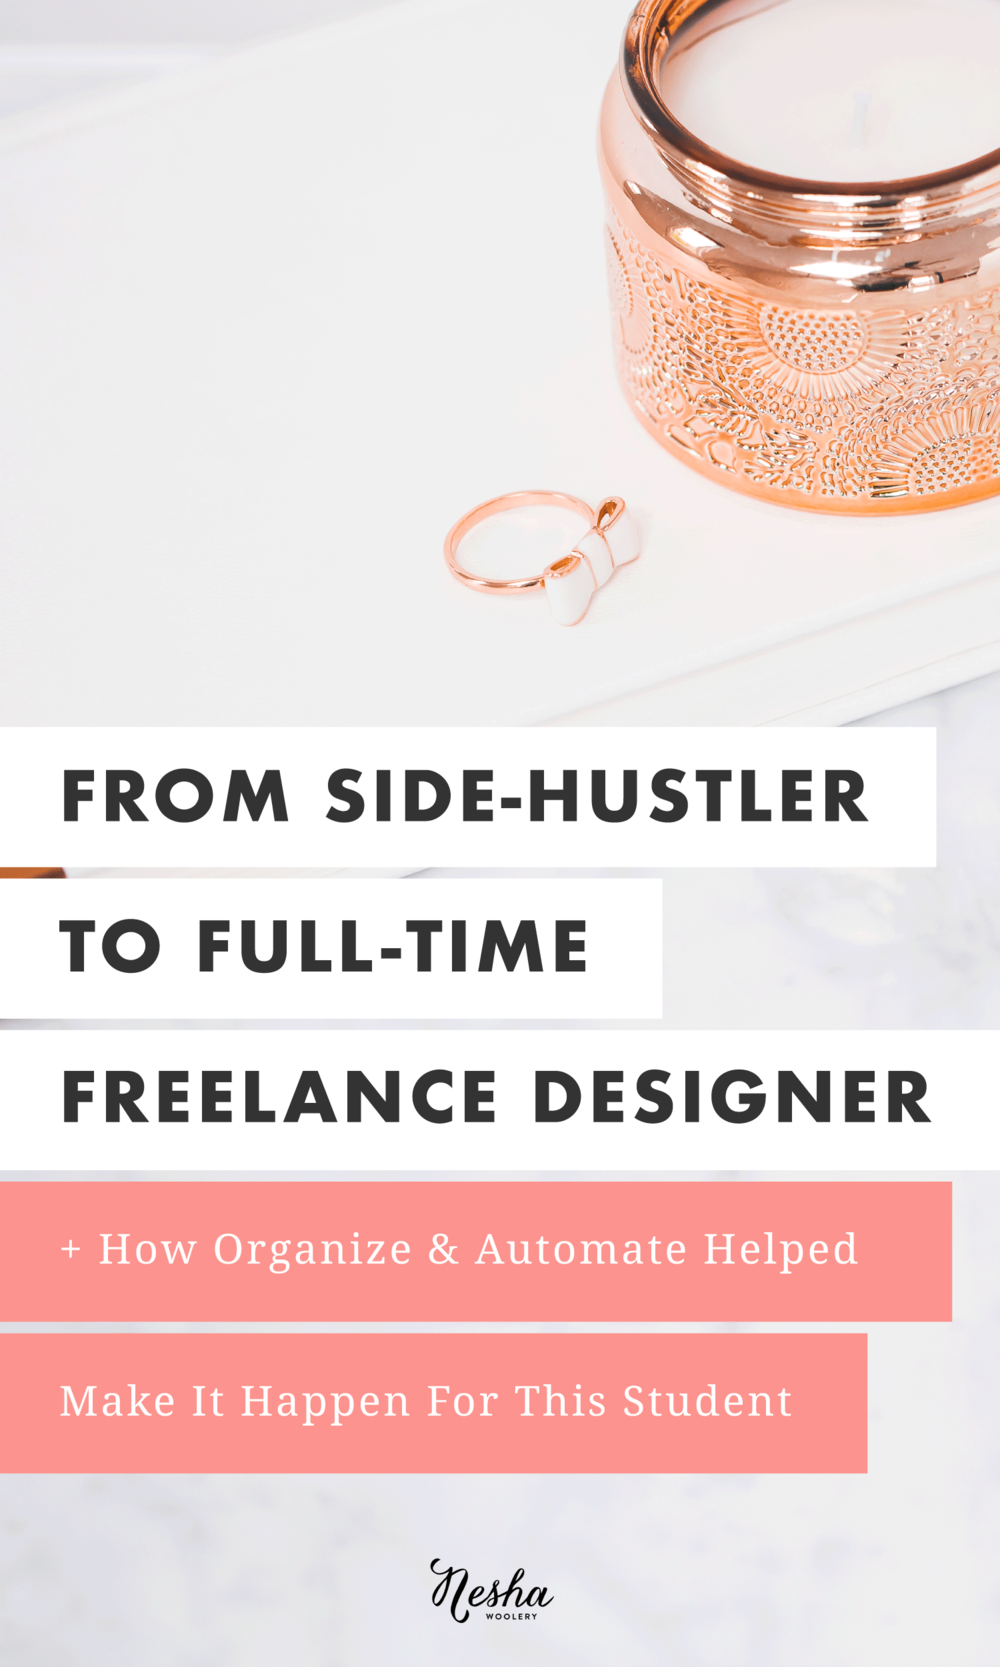 from-side-hustle-to-full-time-freelancer.png